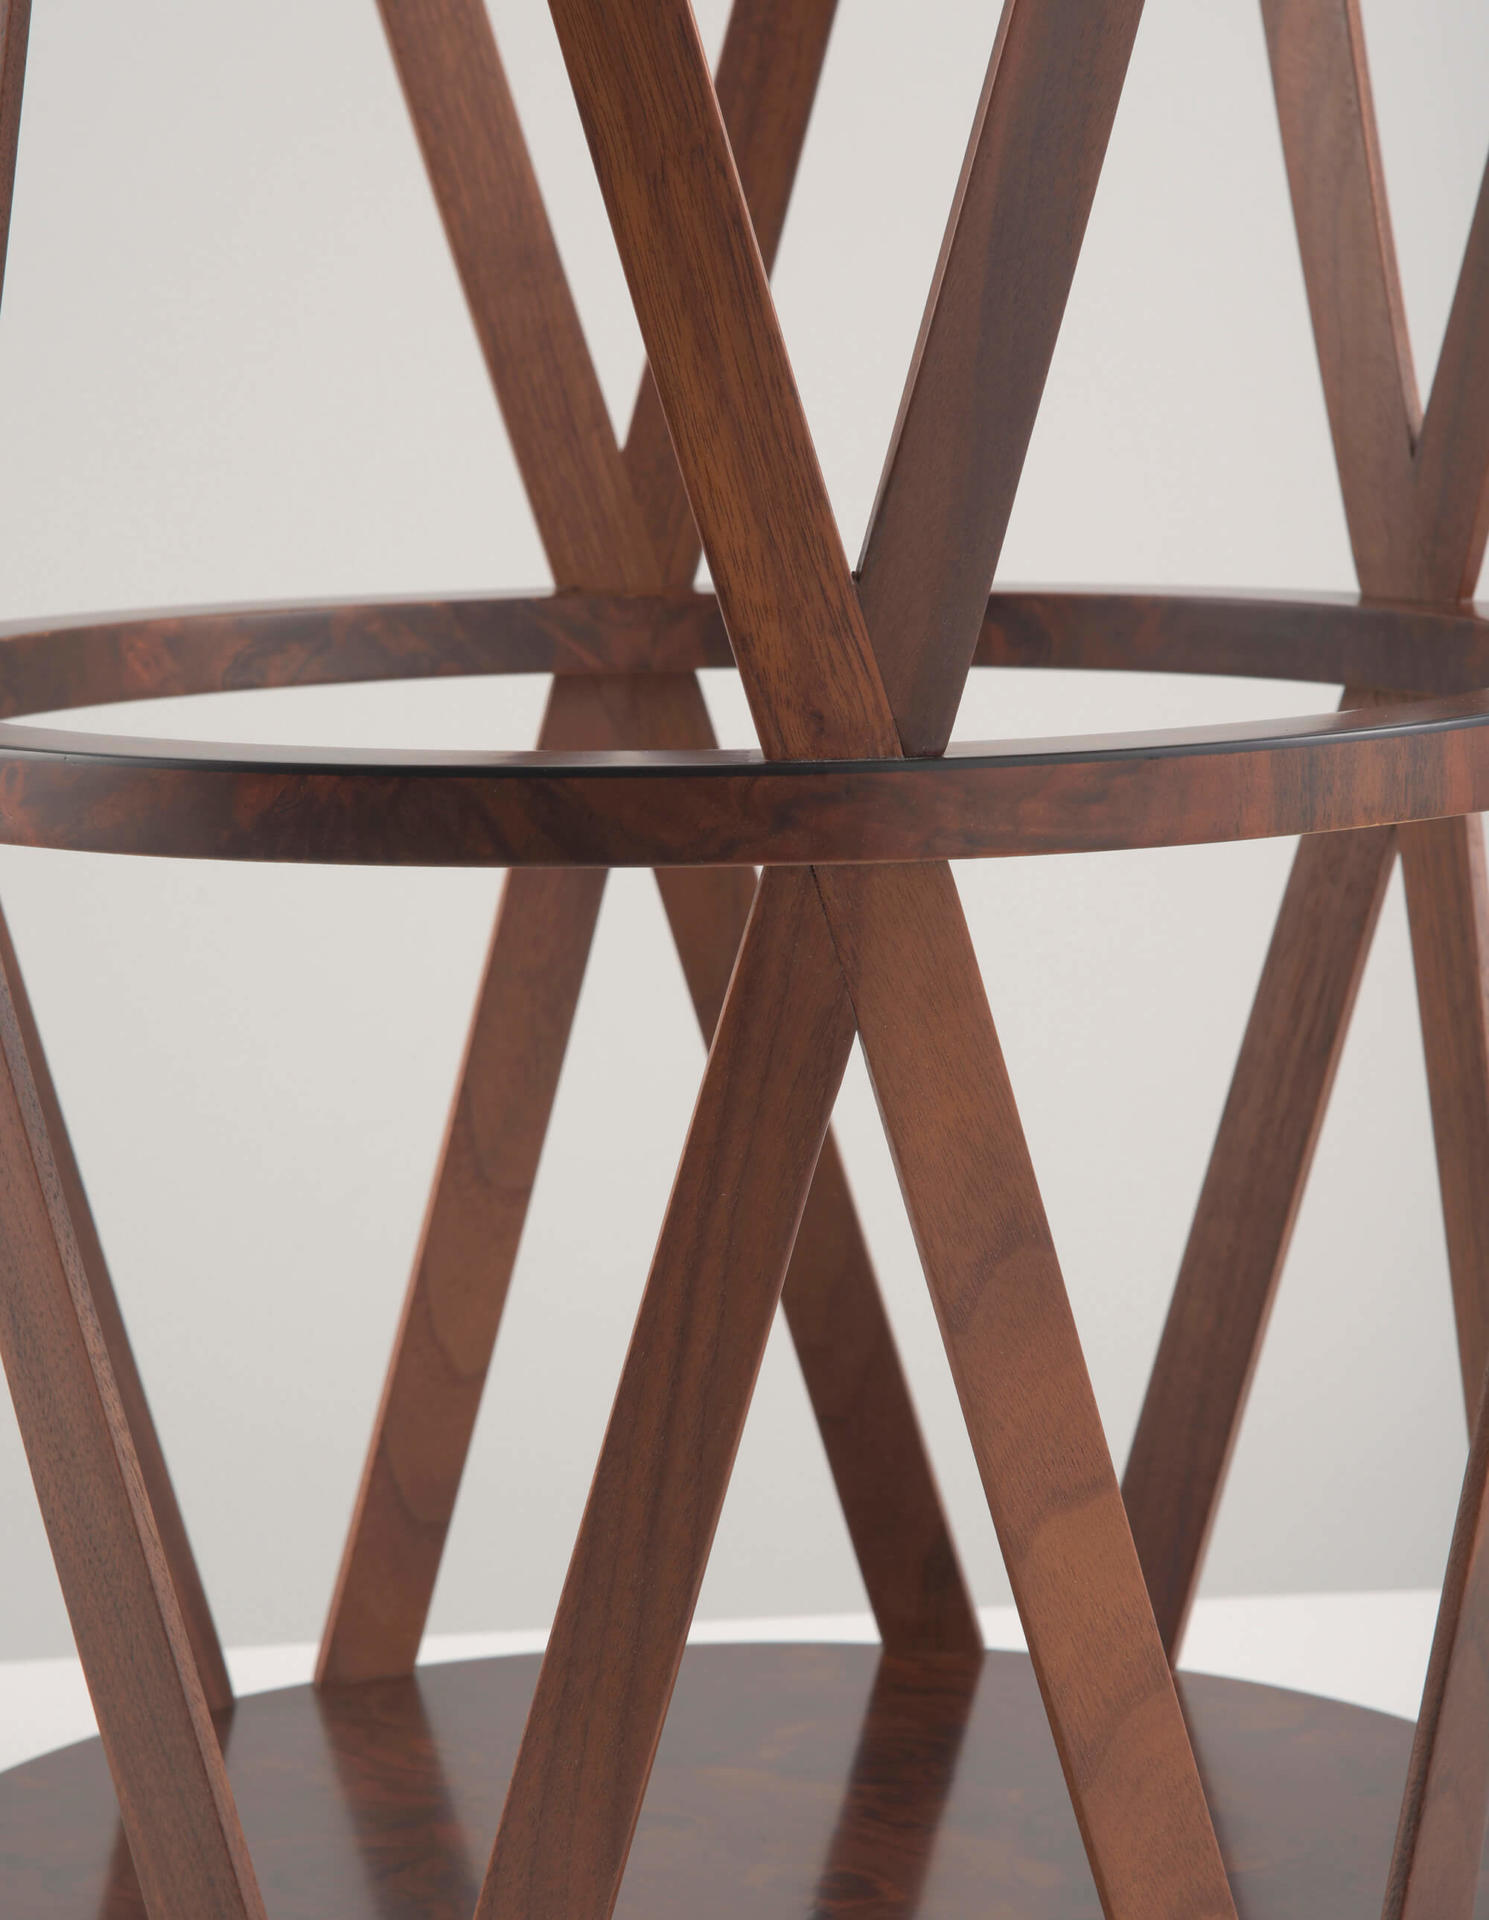 wood drum table by Collier Webb